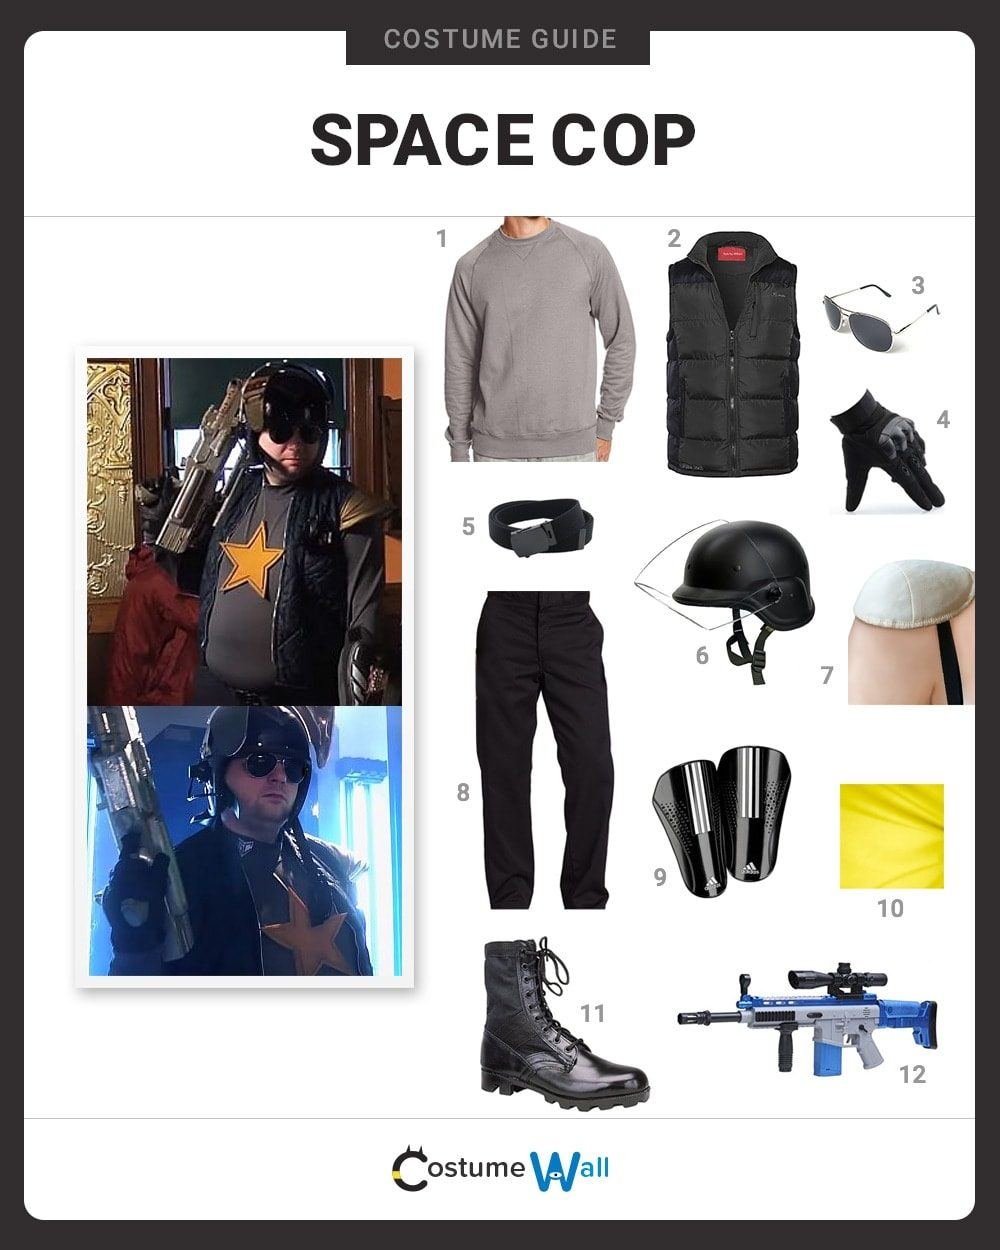 Space Cop Costume Guide